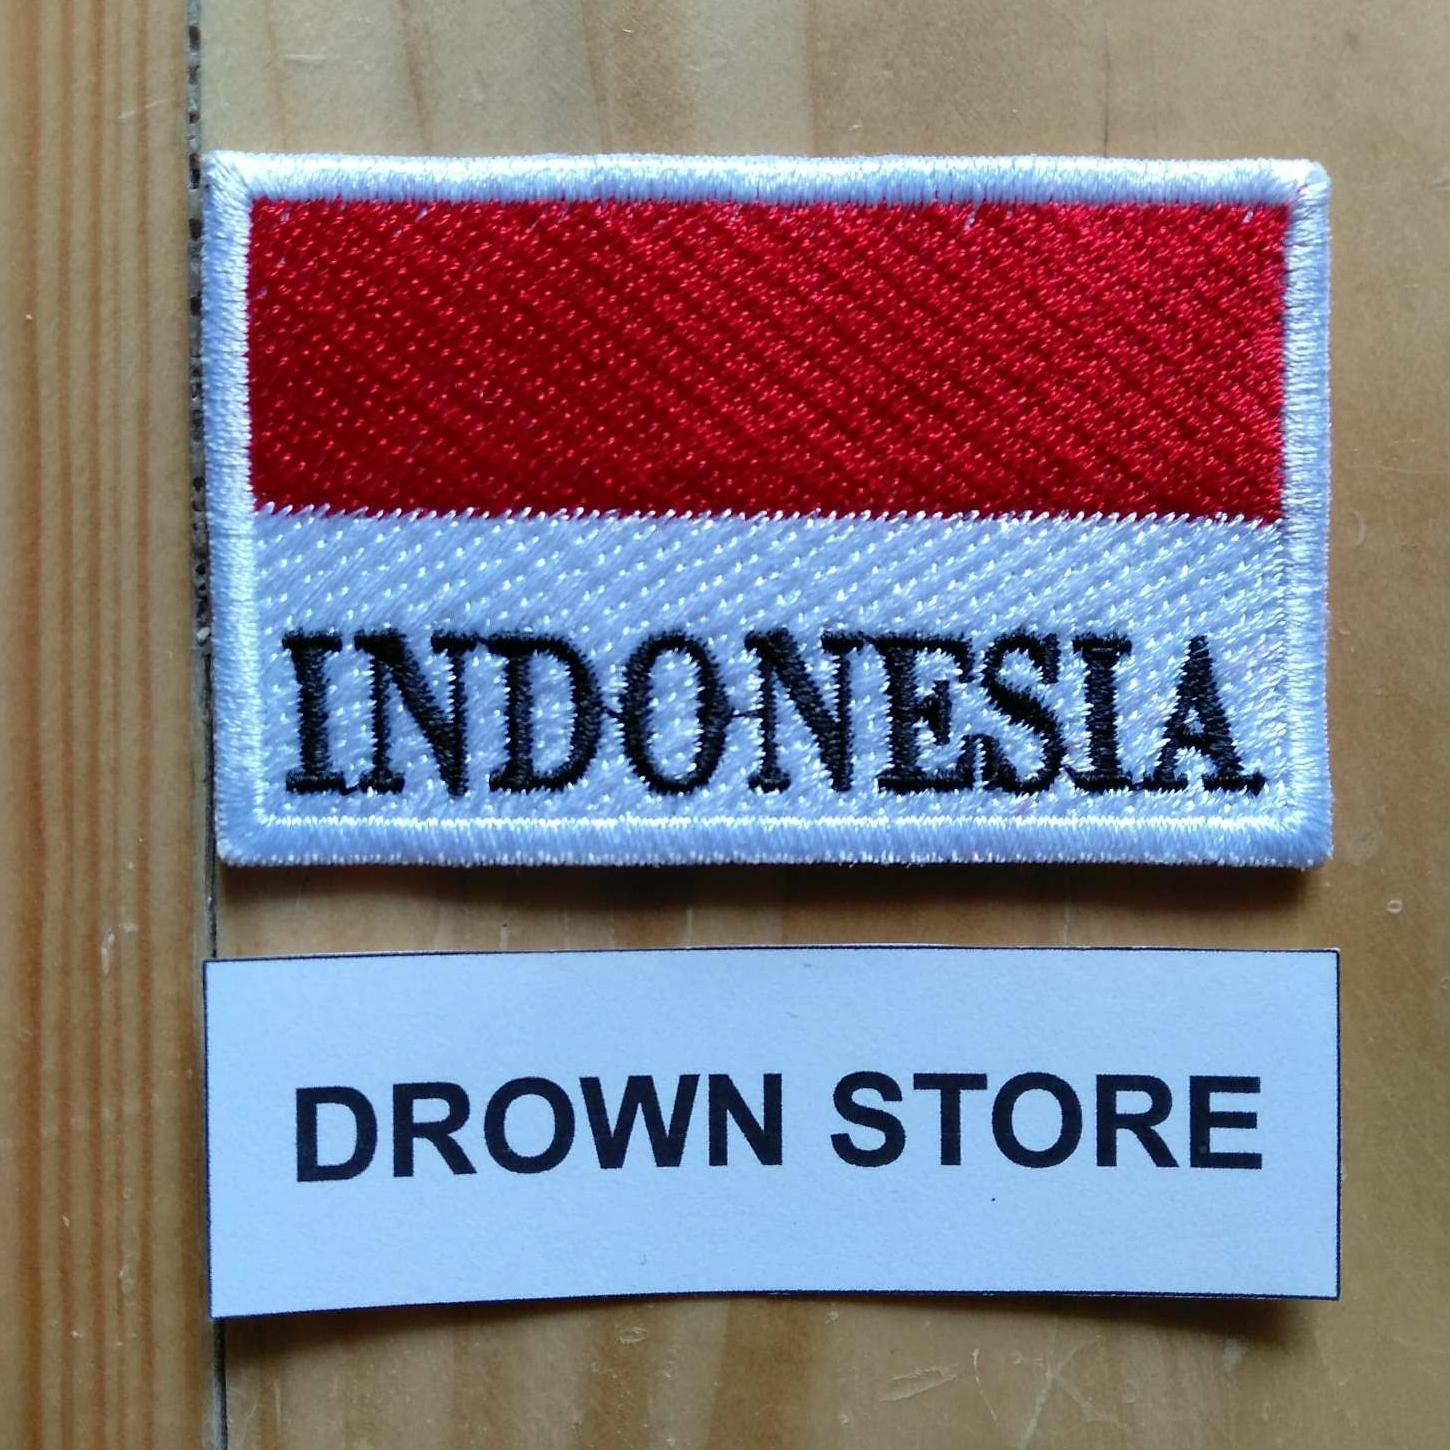 Bendera amerika Serikat Patch bordir patriotik militer merah putih - Internasional - 5. Source · Emblem Bordir Patch Bendera Indonesia + Tulisan